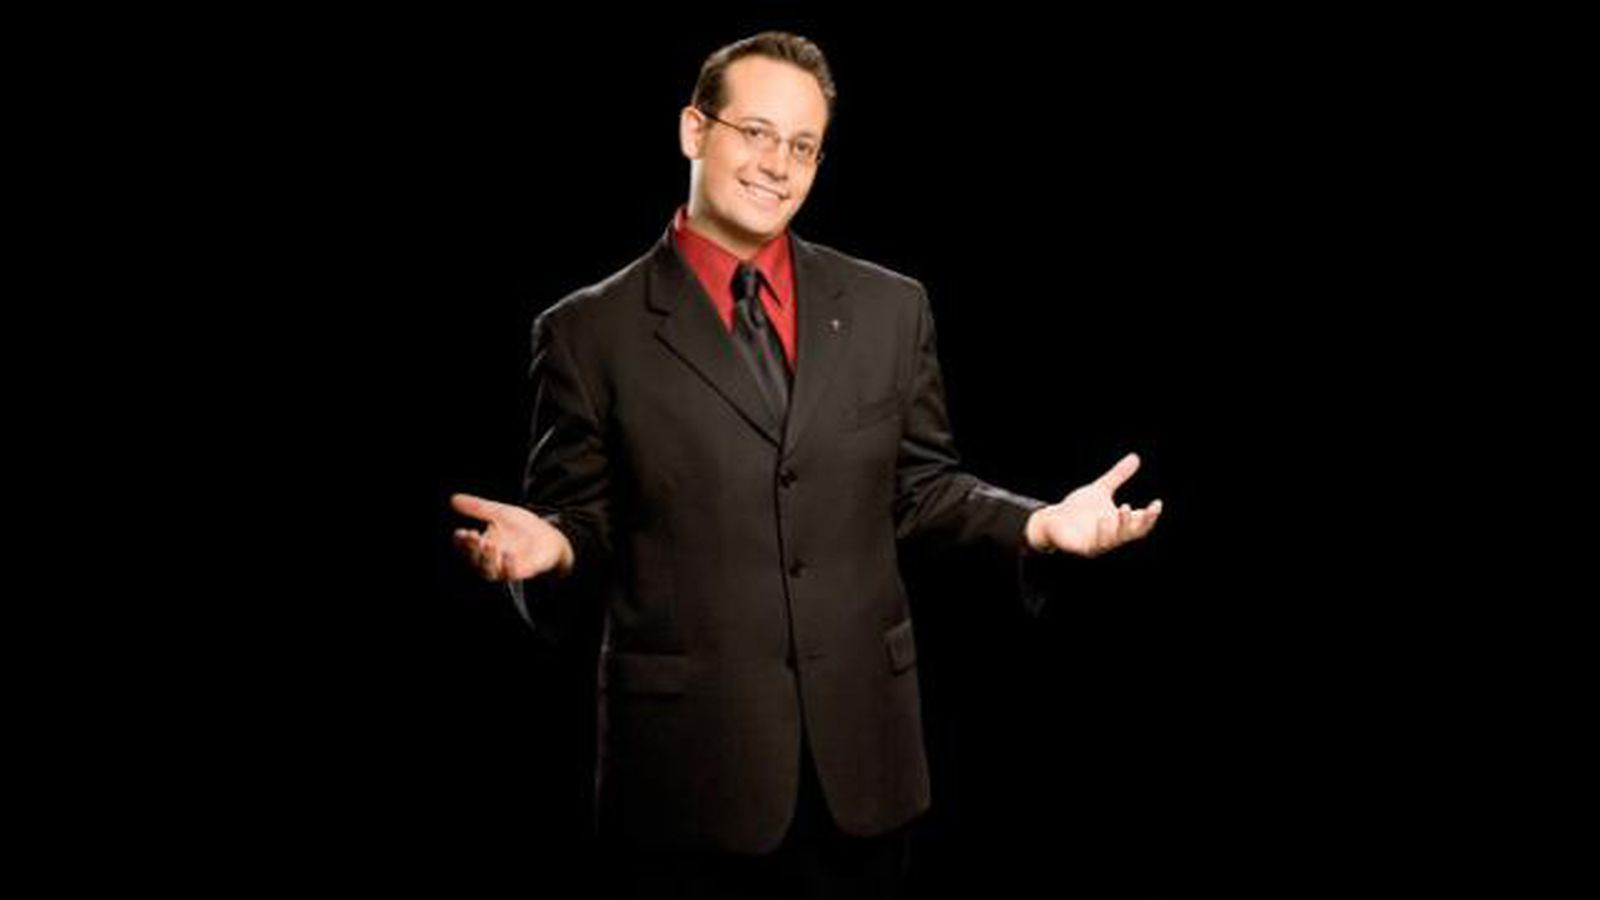 Joey Styles Shoots On Complaining Wwe Fans Or The